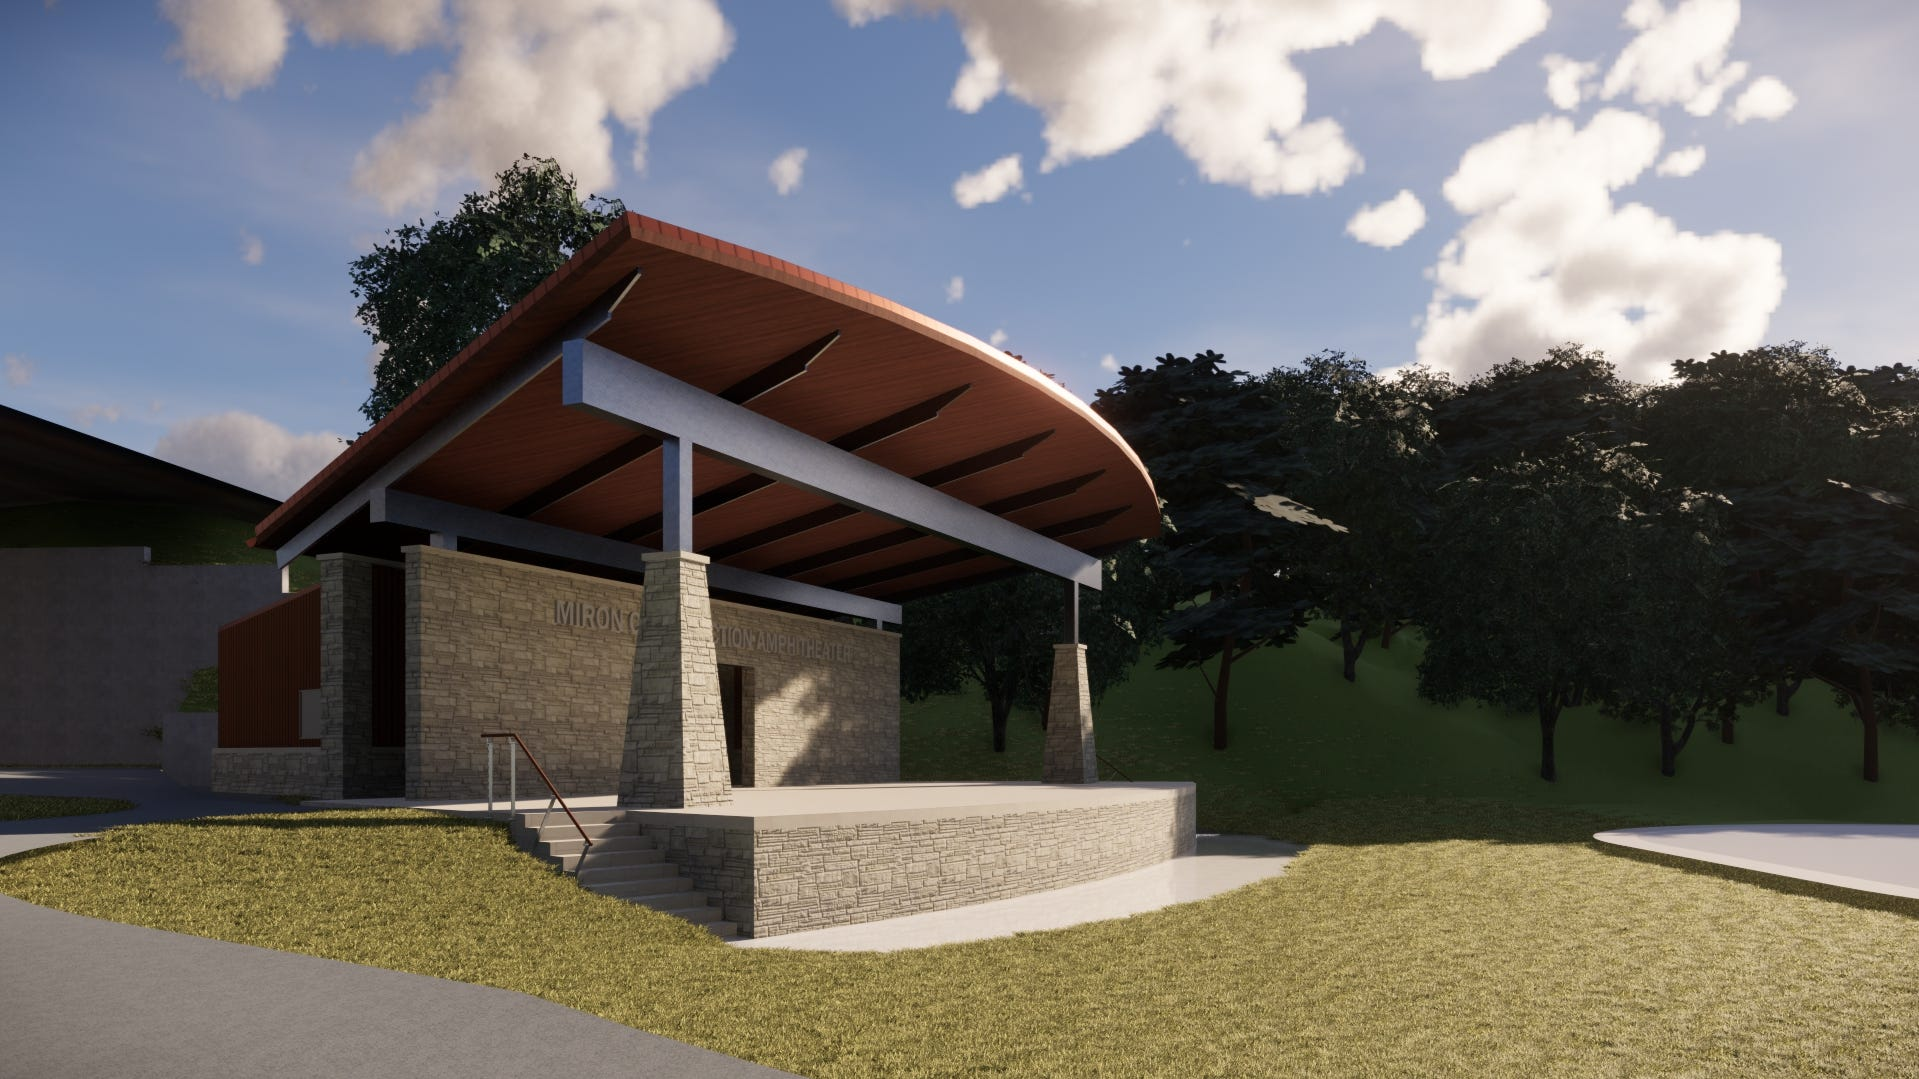 Miron Construction donates 2,600-square-foot amphitheater to Jones Park in downtown Appleton